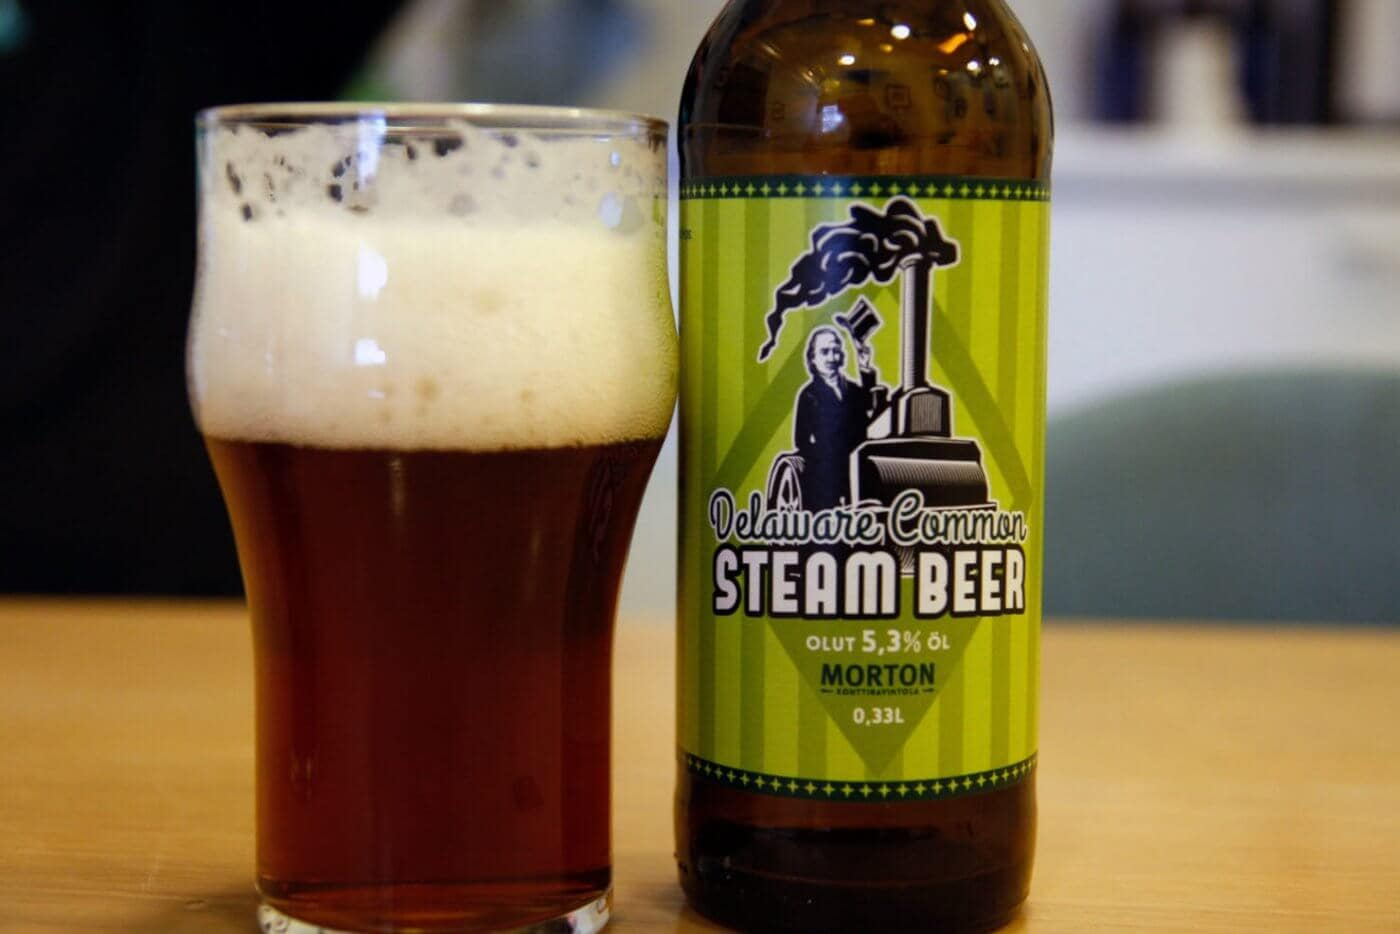 Morton Steam Beer 2016 - Delaware Common